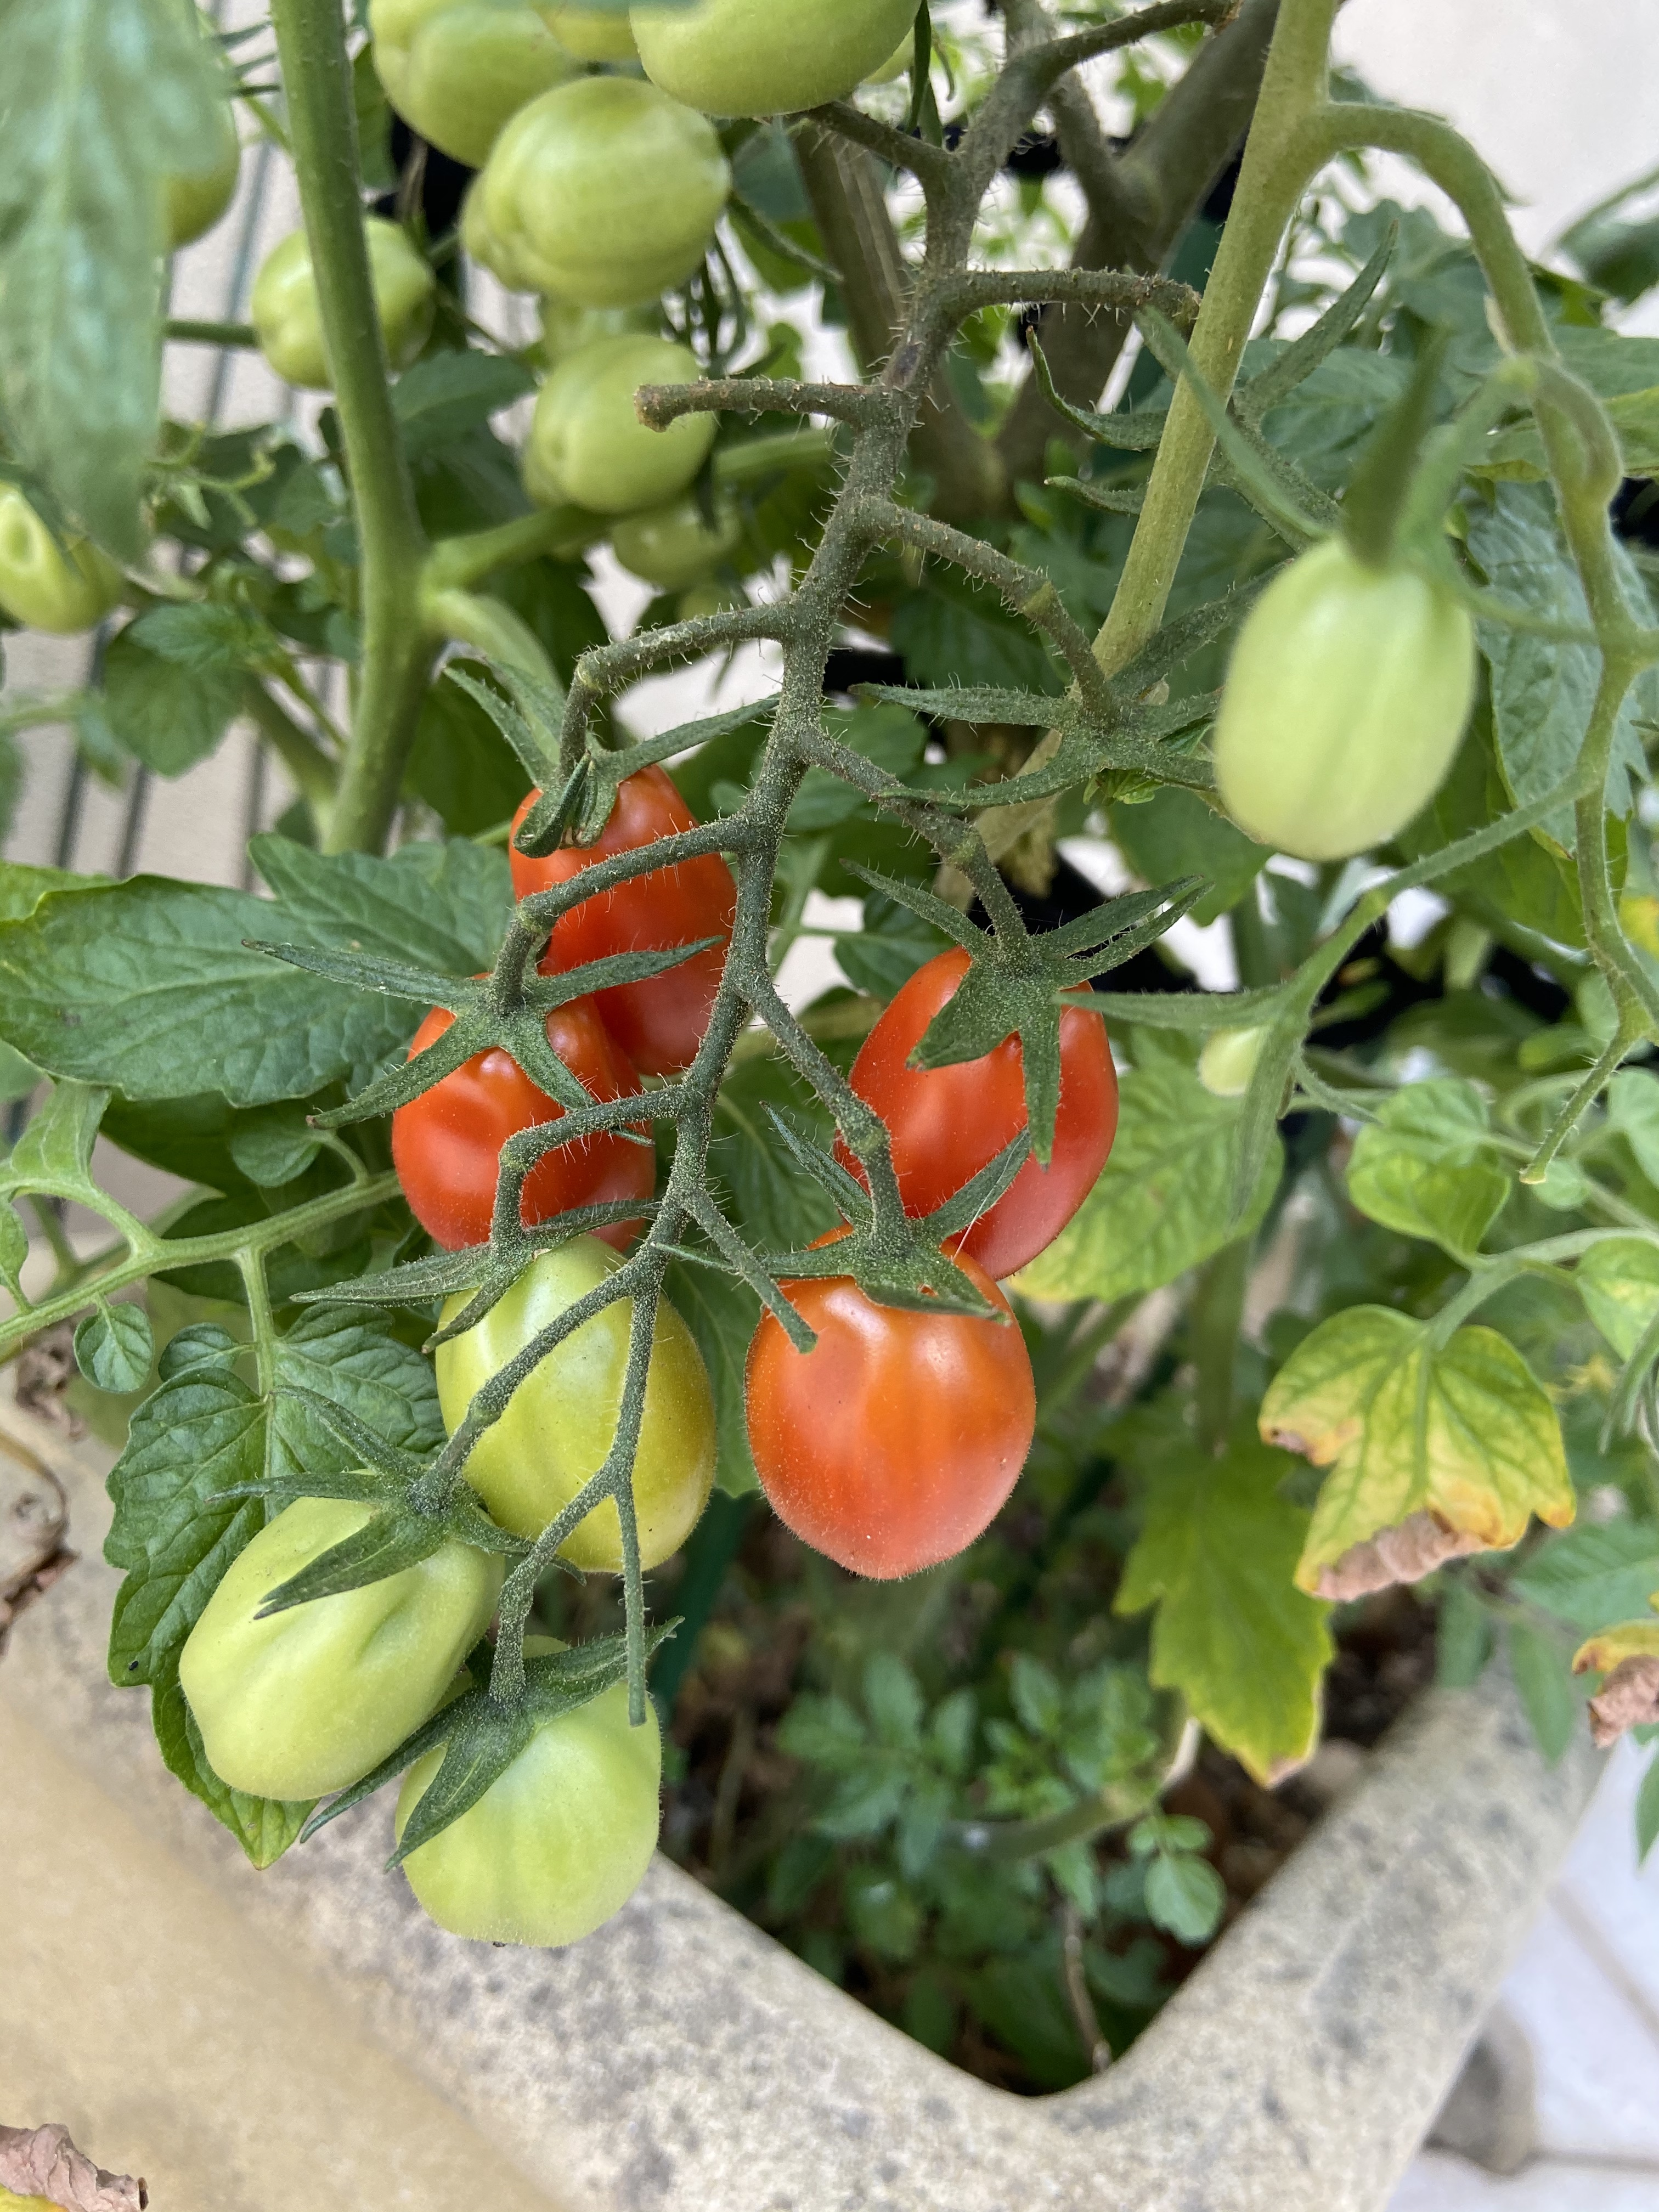 Everything I learned about about self care I learned from my tomatoes